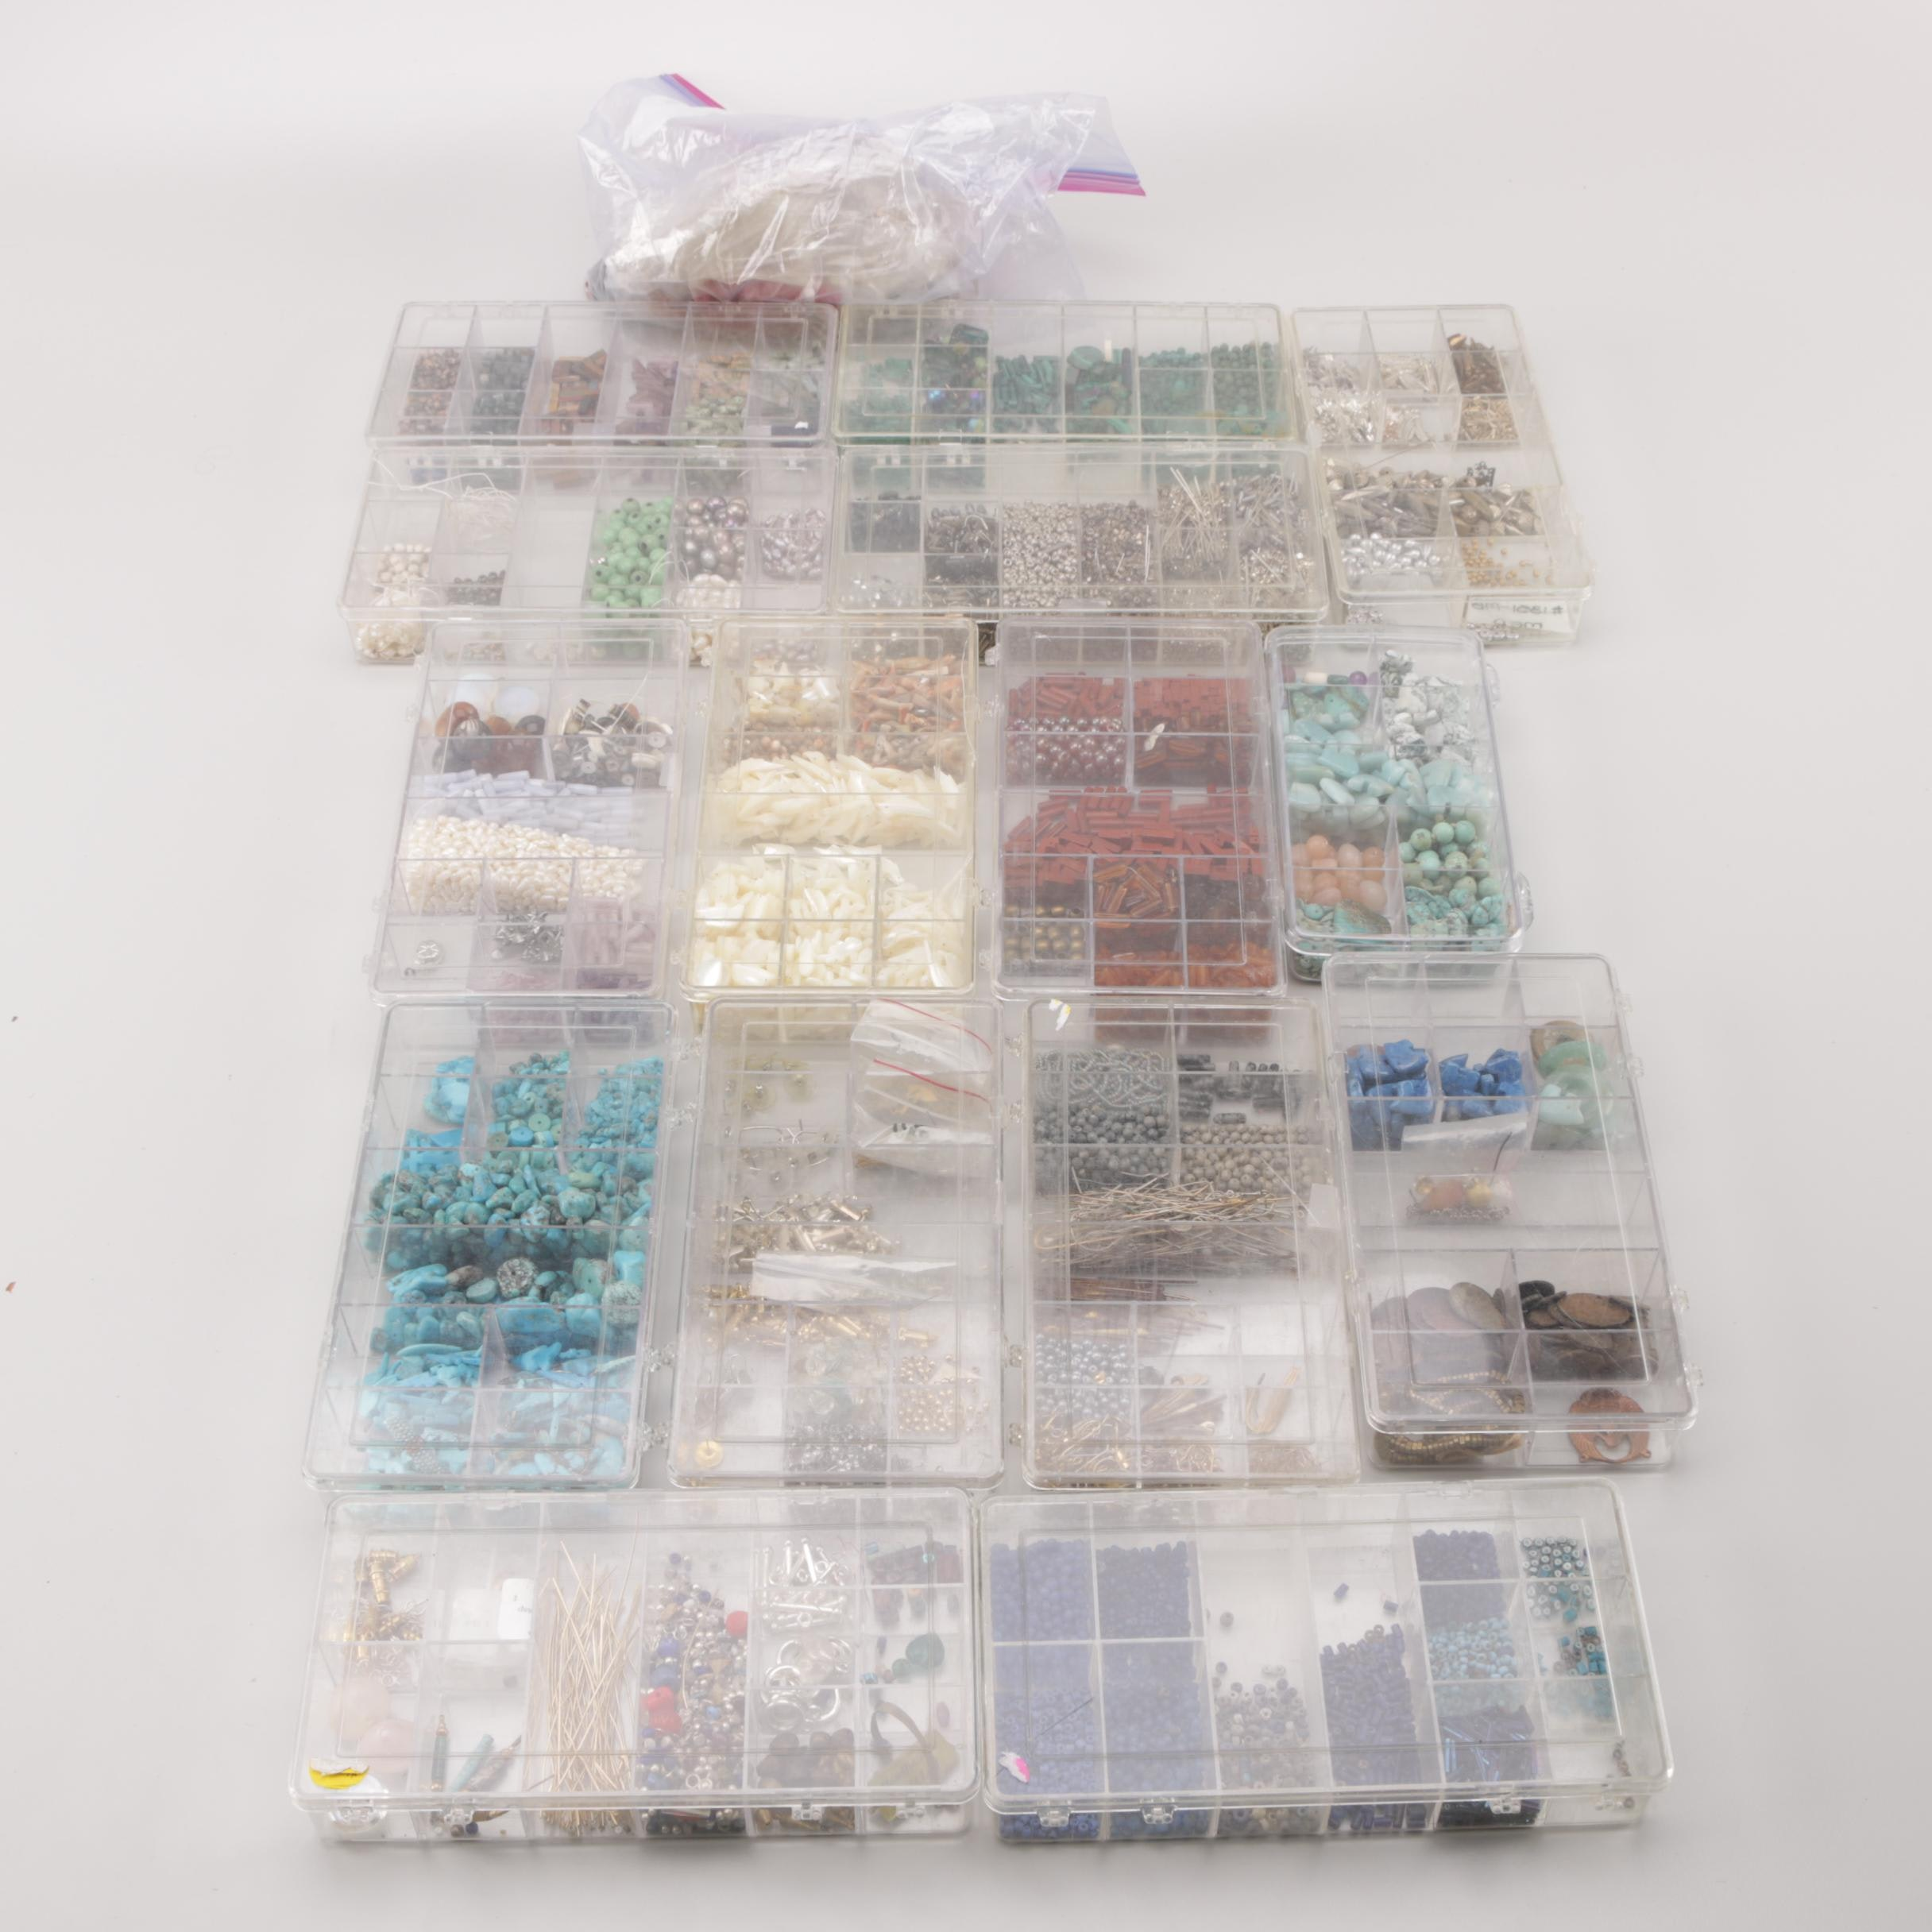 Assortment of Jewelry Making Supplies Including Gemstone and Turquoise Beads